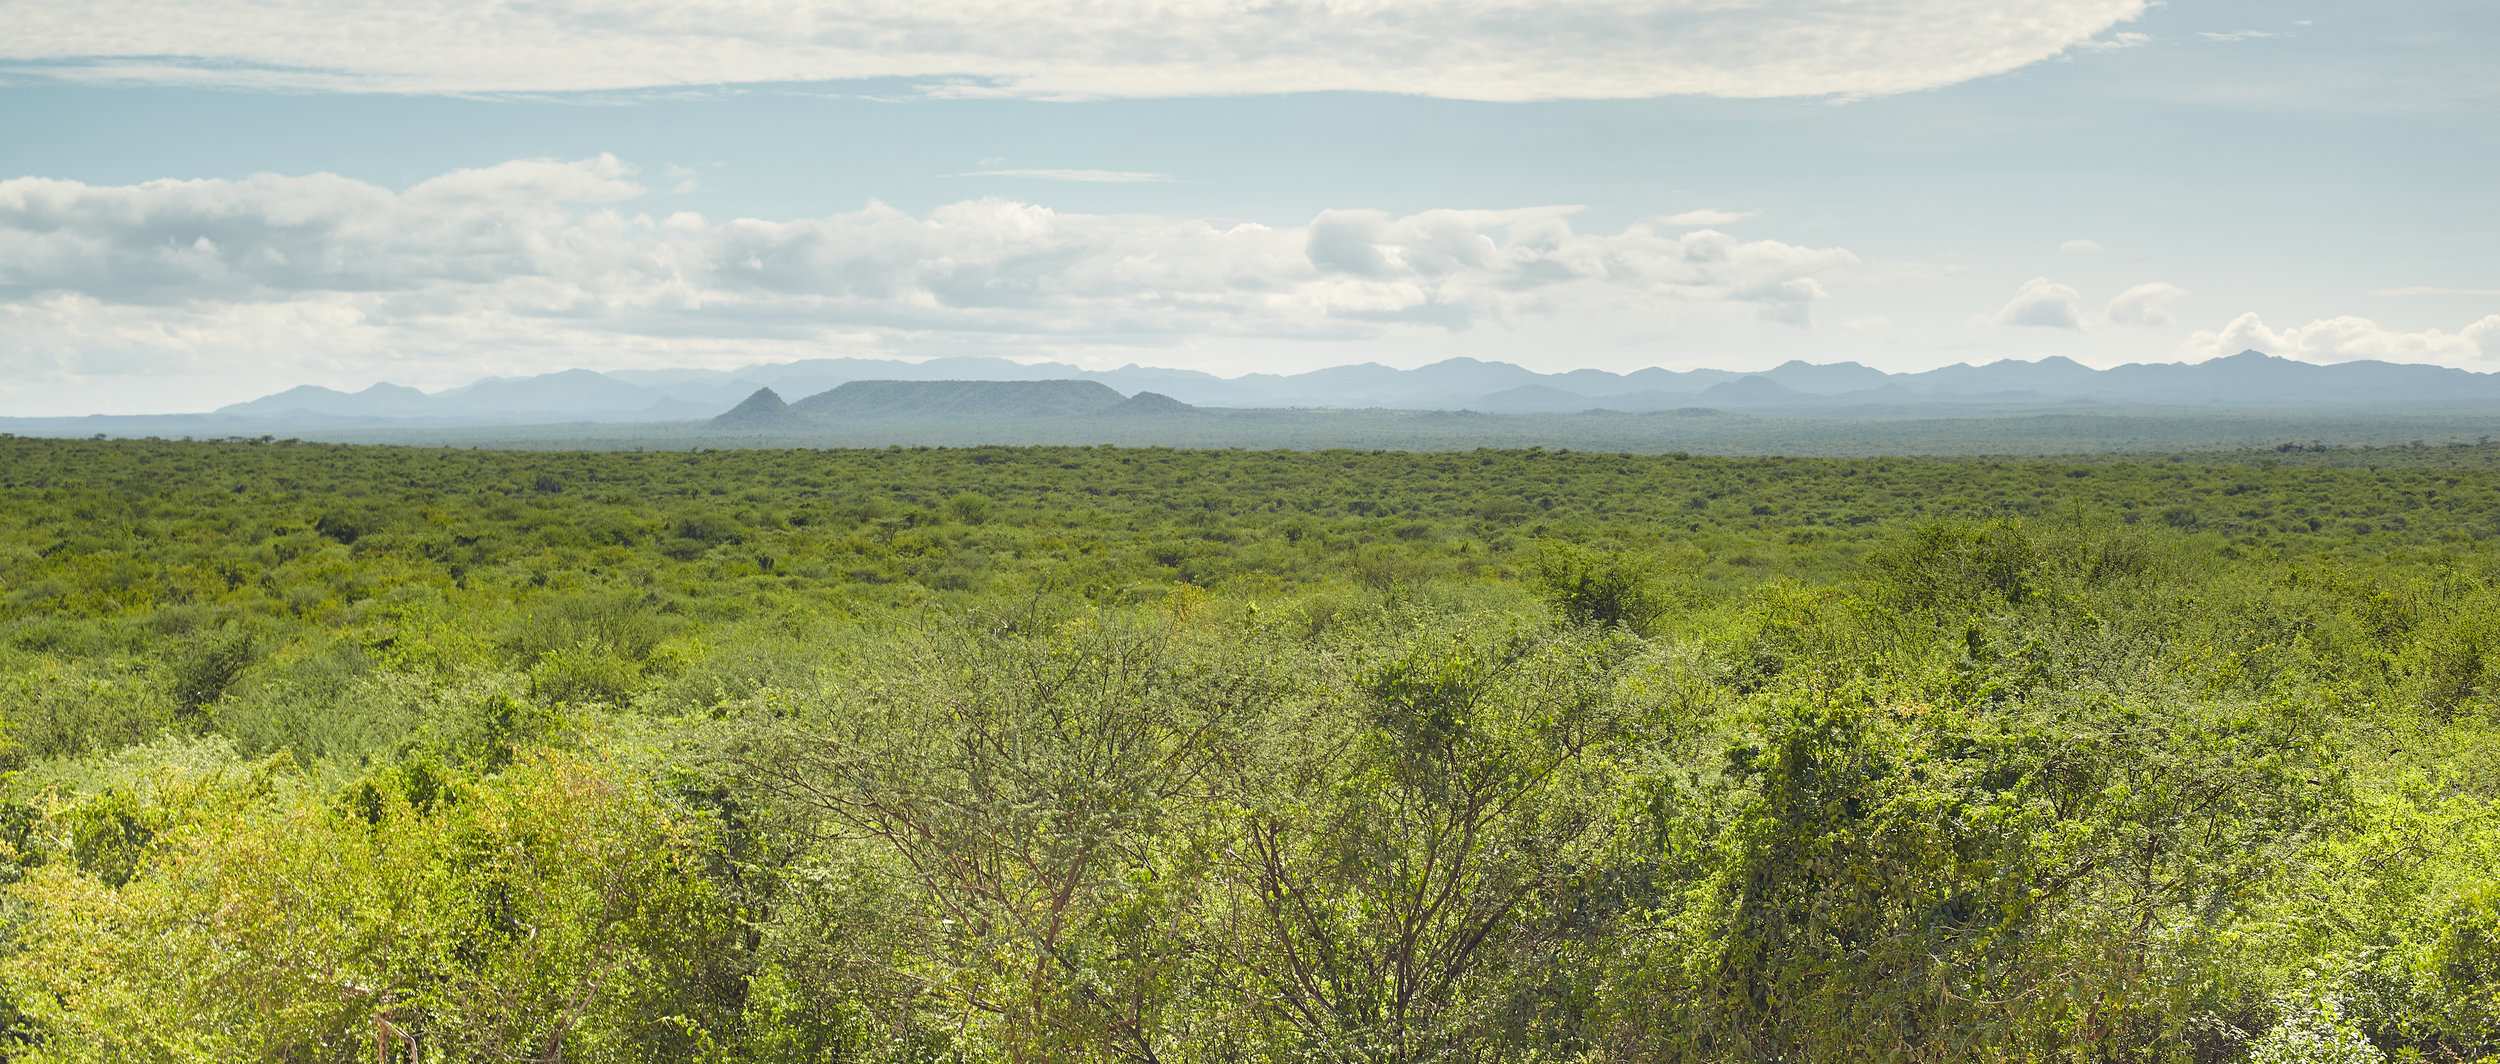 LOWER OMO VALLEY LANDSCAPE, ETHIOPIA